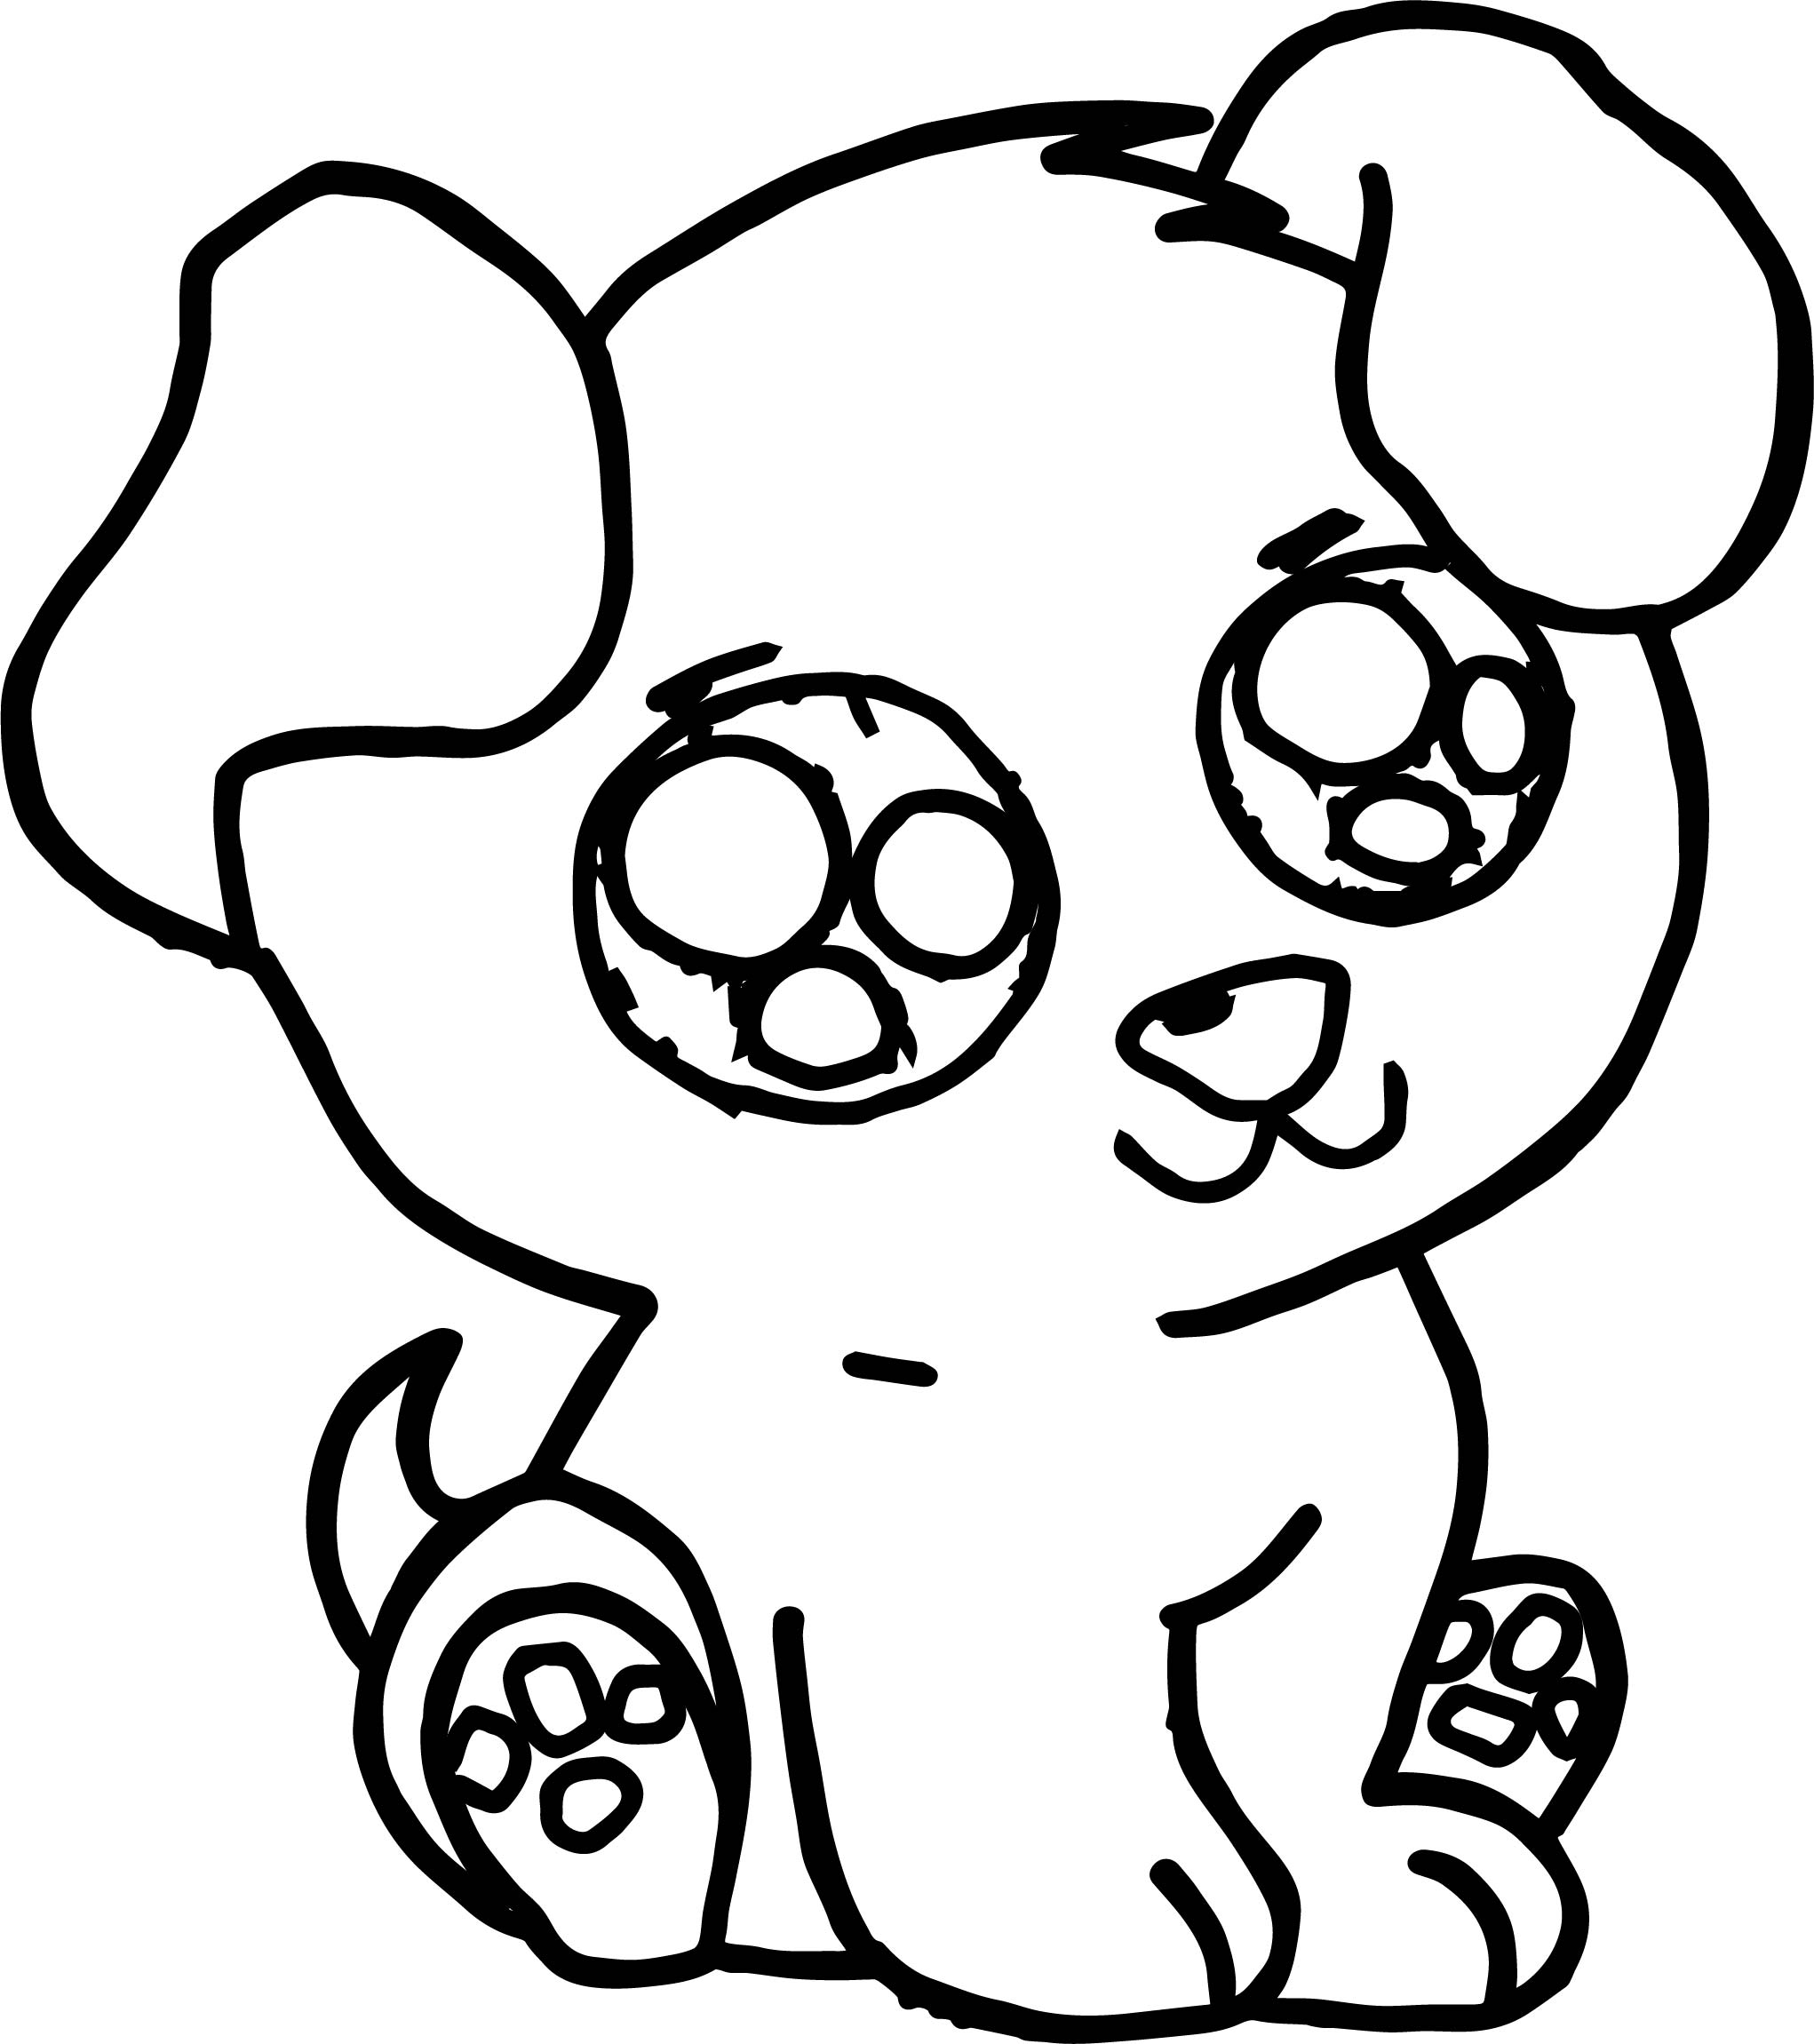 coloring sheet dog puppy coloring pages best coloring pages for kids dog sheet coloring